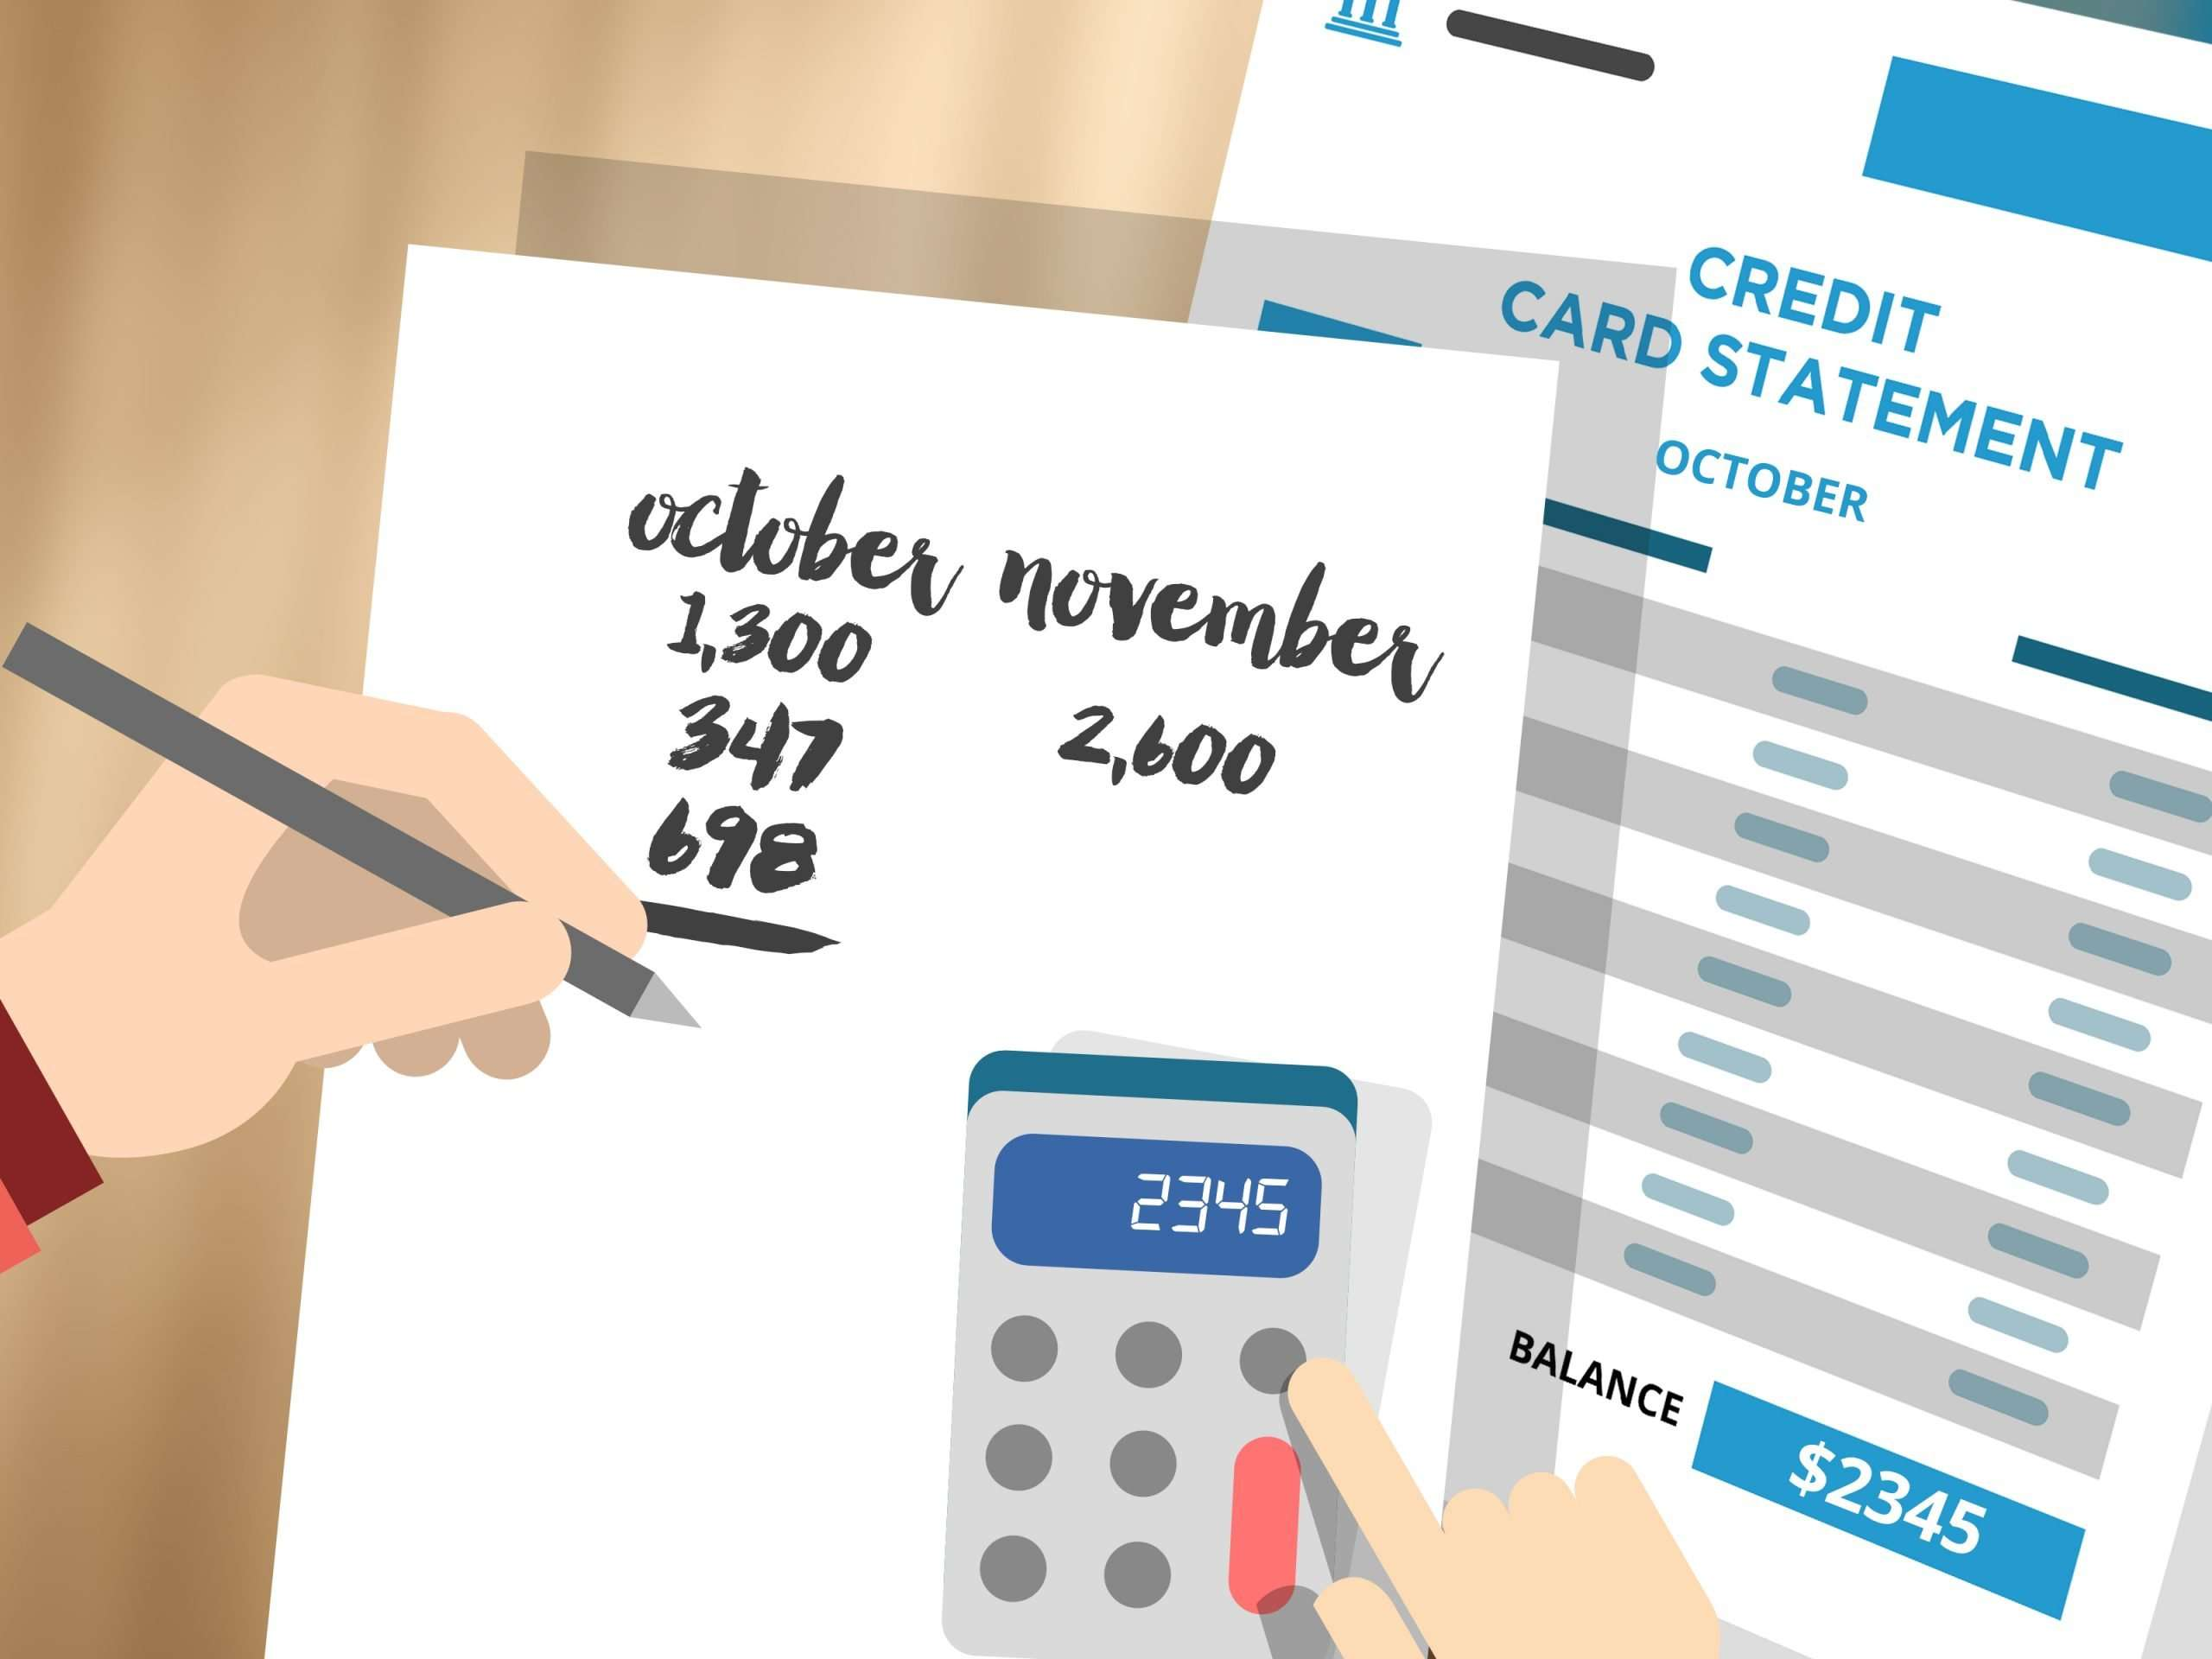 3 Ways to Check Your Credit Card Balance